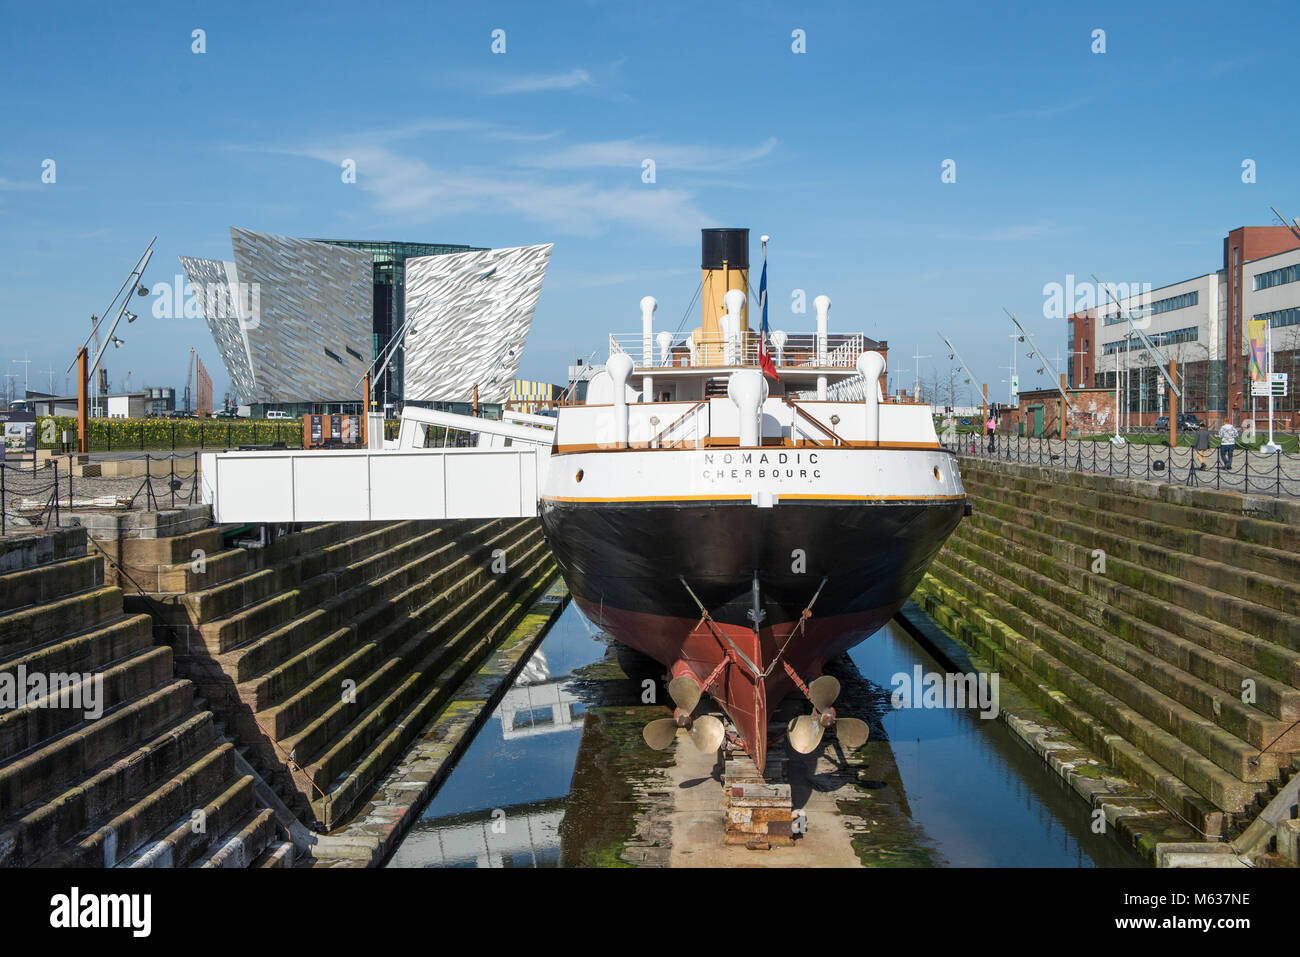 The ship 'nomadic cerbourg' at the Titanic Museum in Belfast - Stock Image